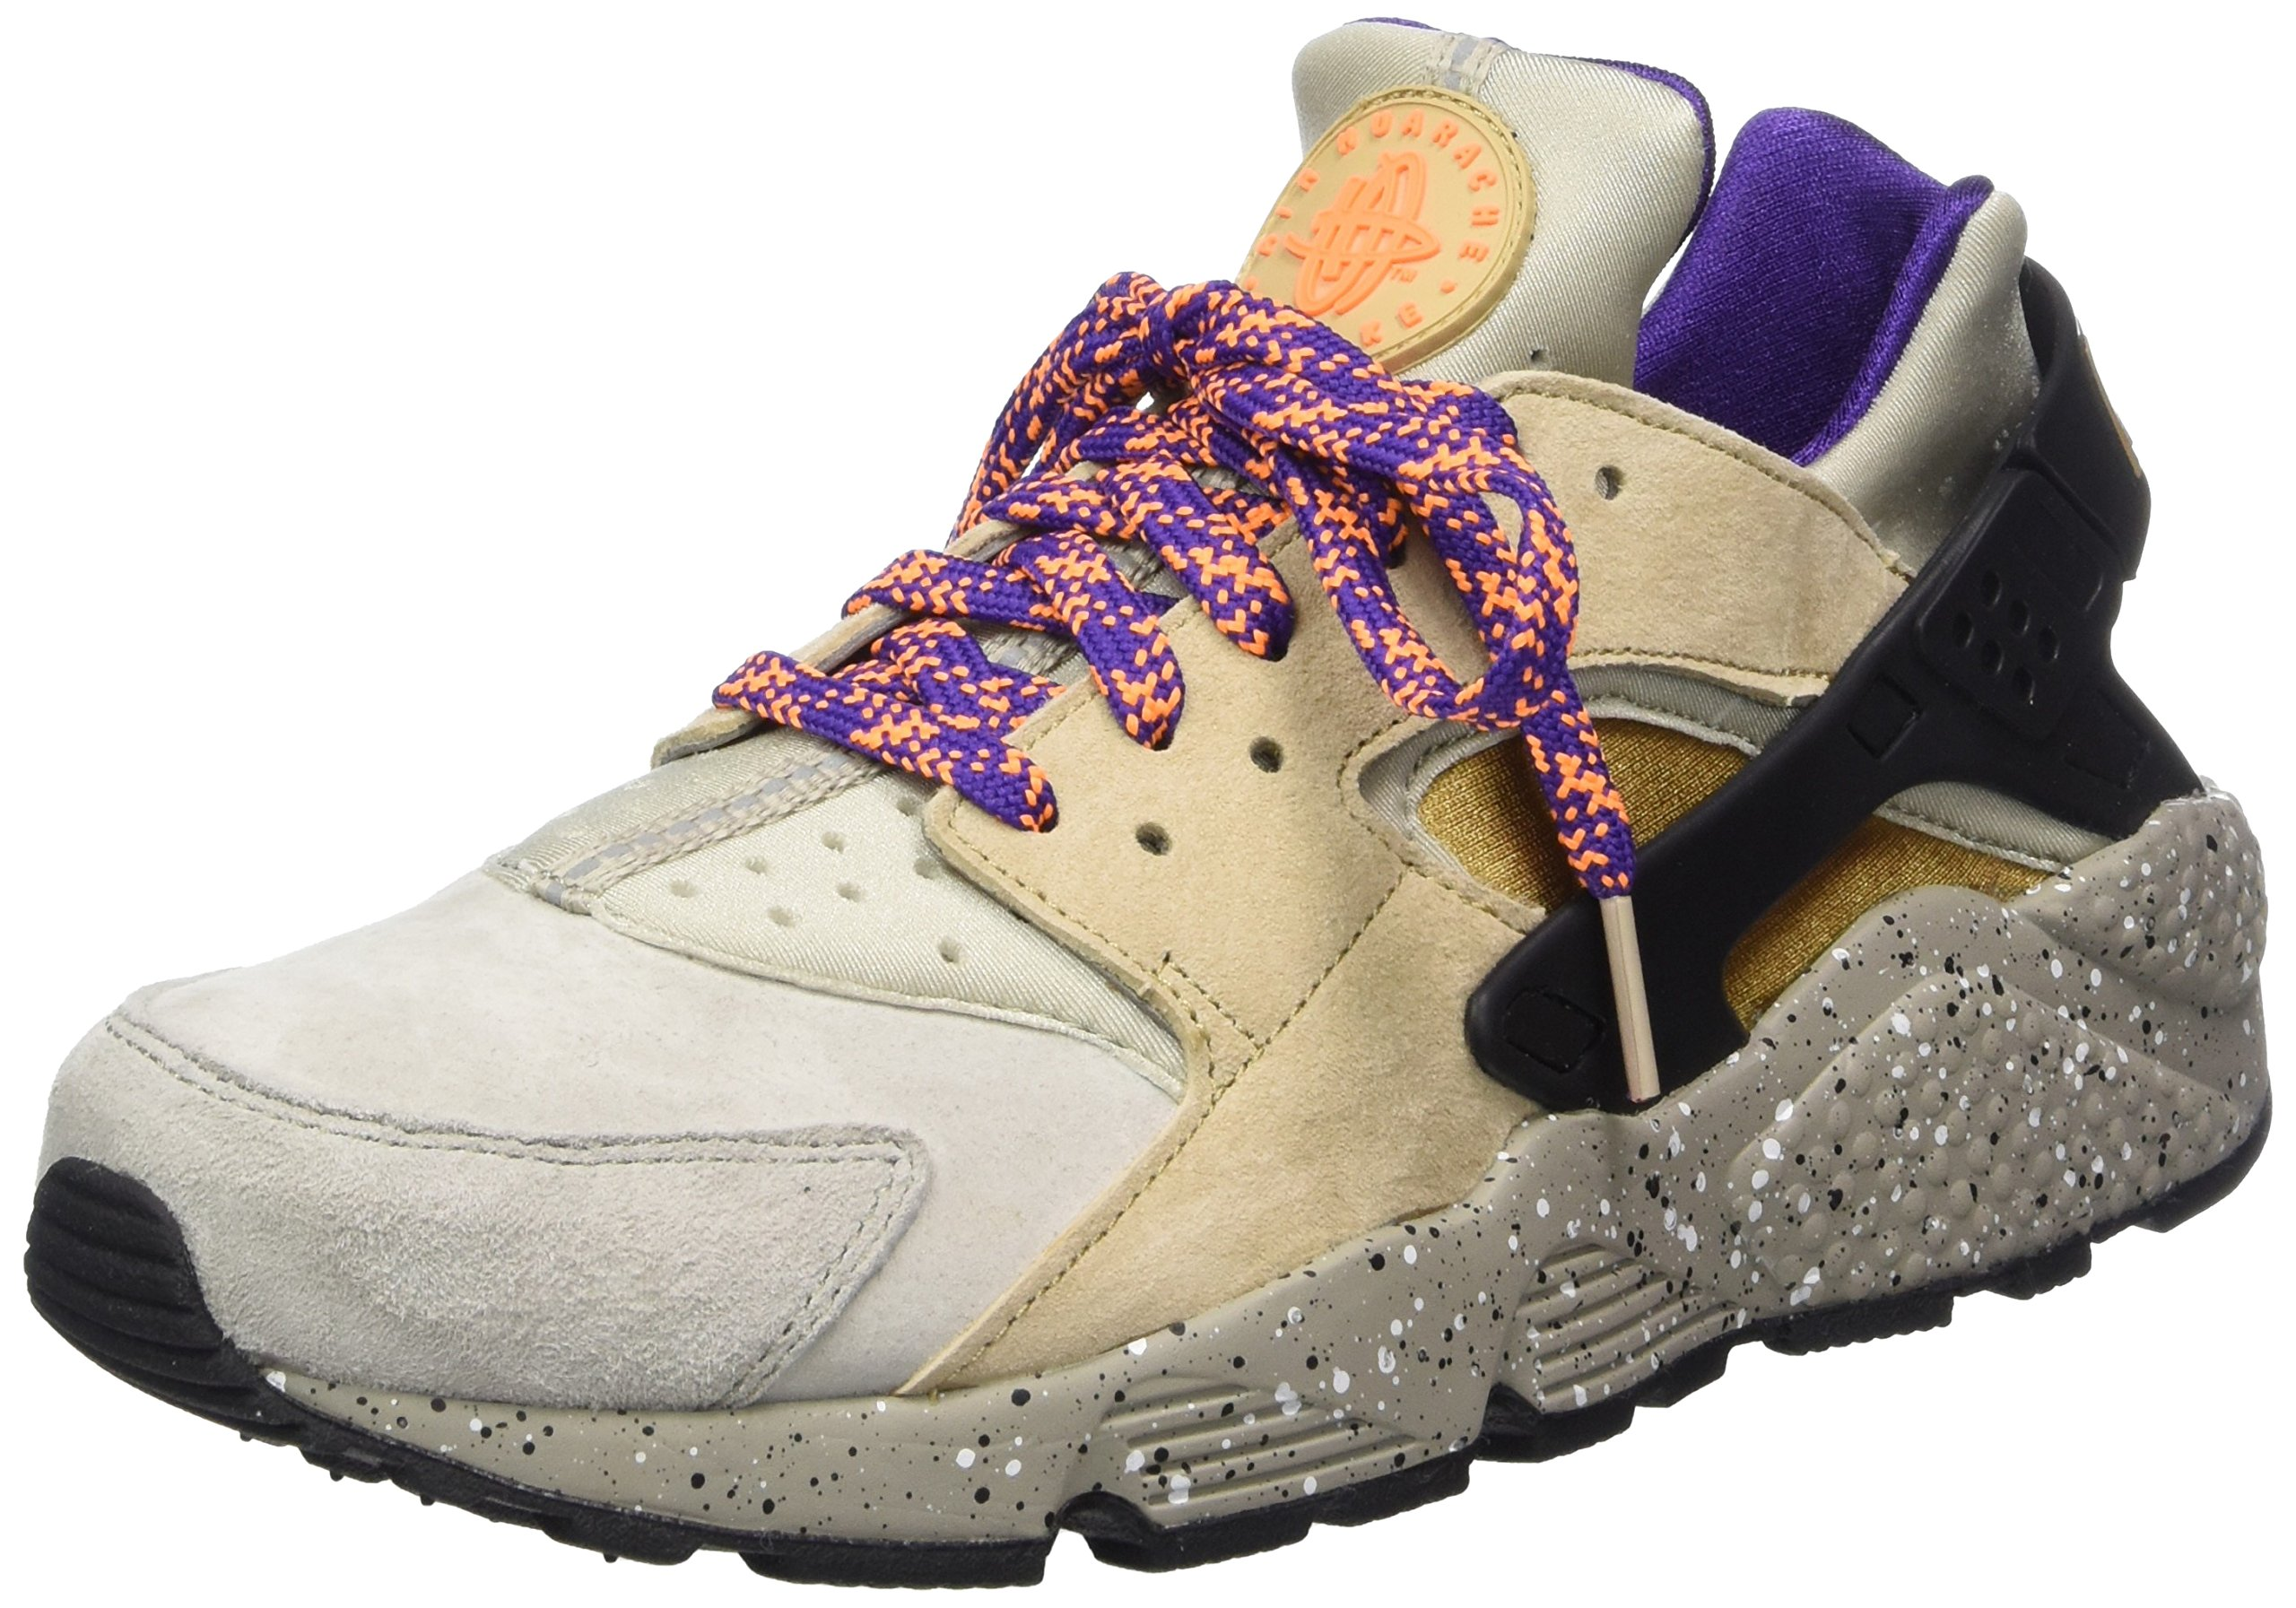 306cb56e8d Galleon - Nike Men's Air Huarache Run PRM Gymnastics Shoes, Multicolour  (Linen/Golden Beige-Black-Court Purple 200), 11 UK